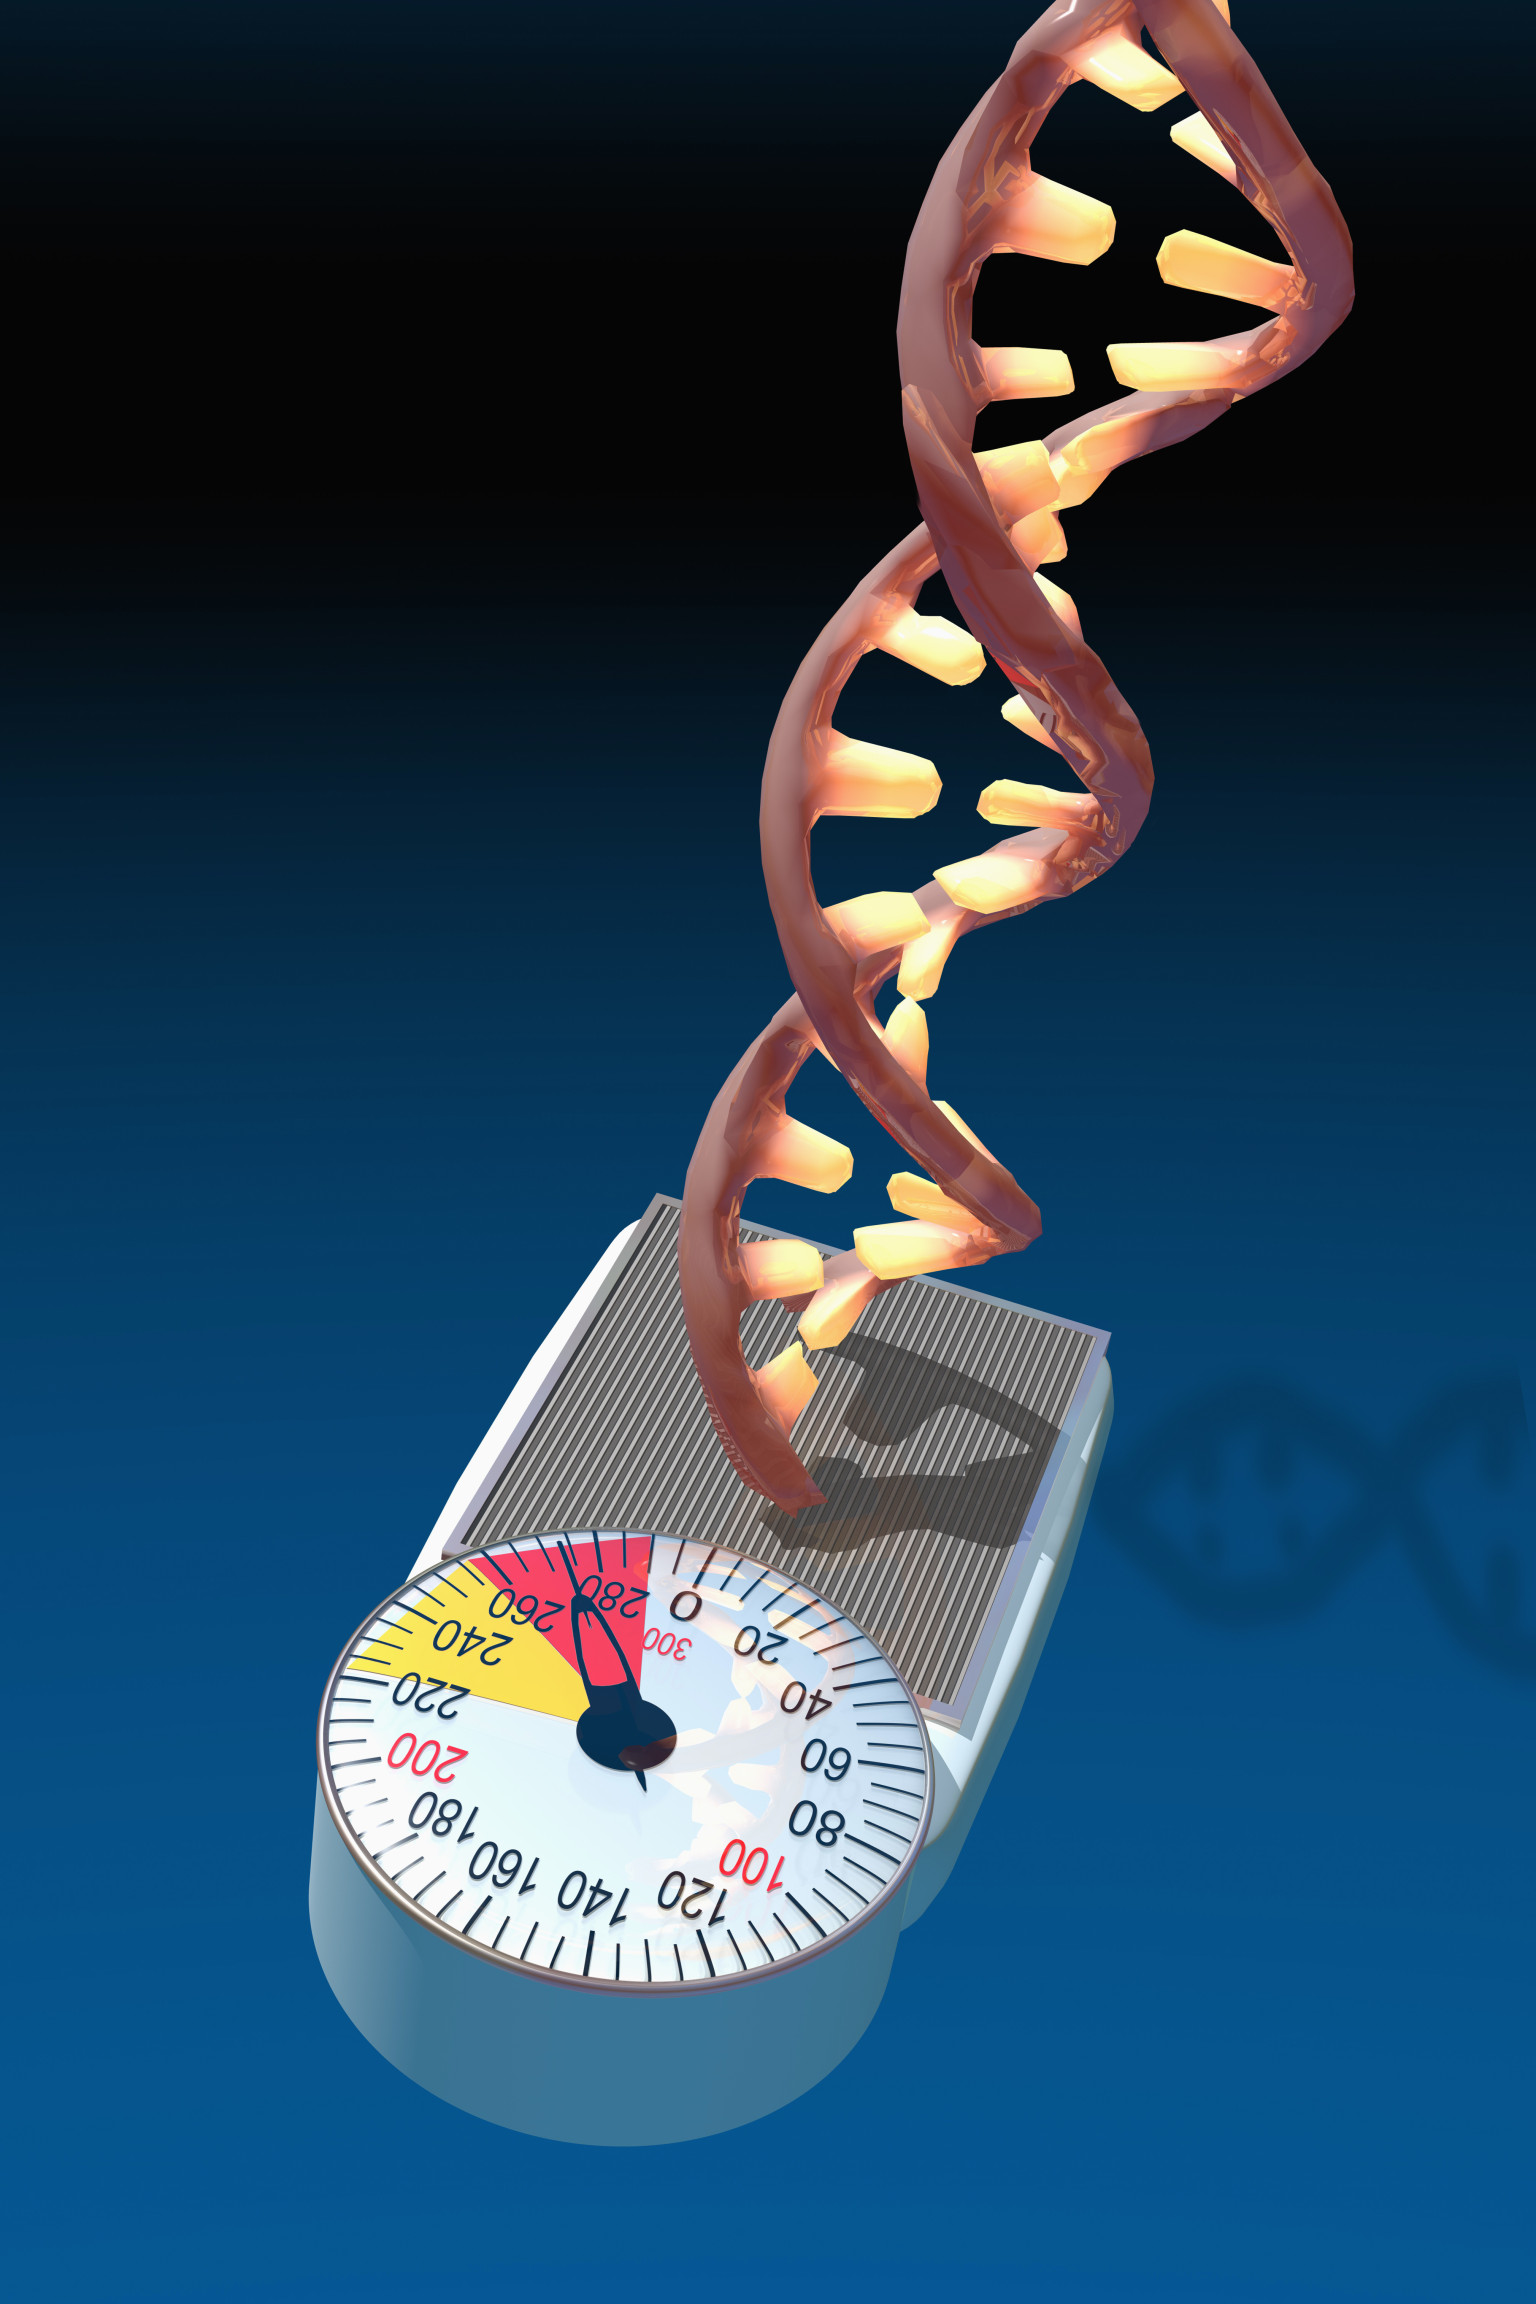 Healthy Diet Helps Those With 'Obesity Genes' Most - WebMD